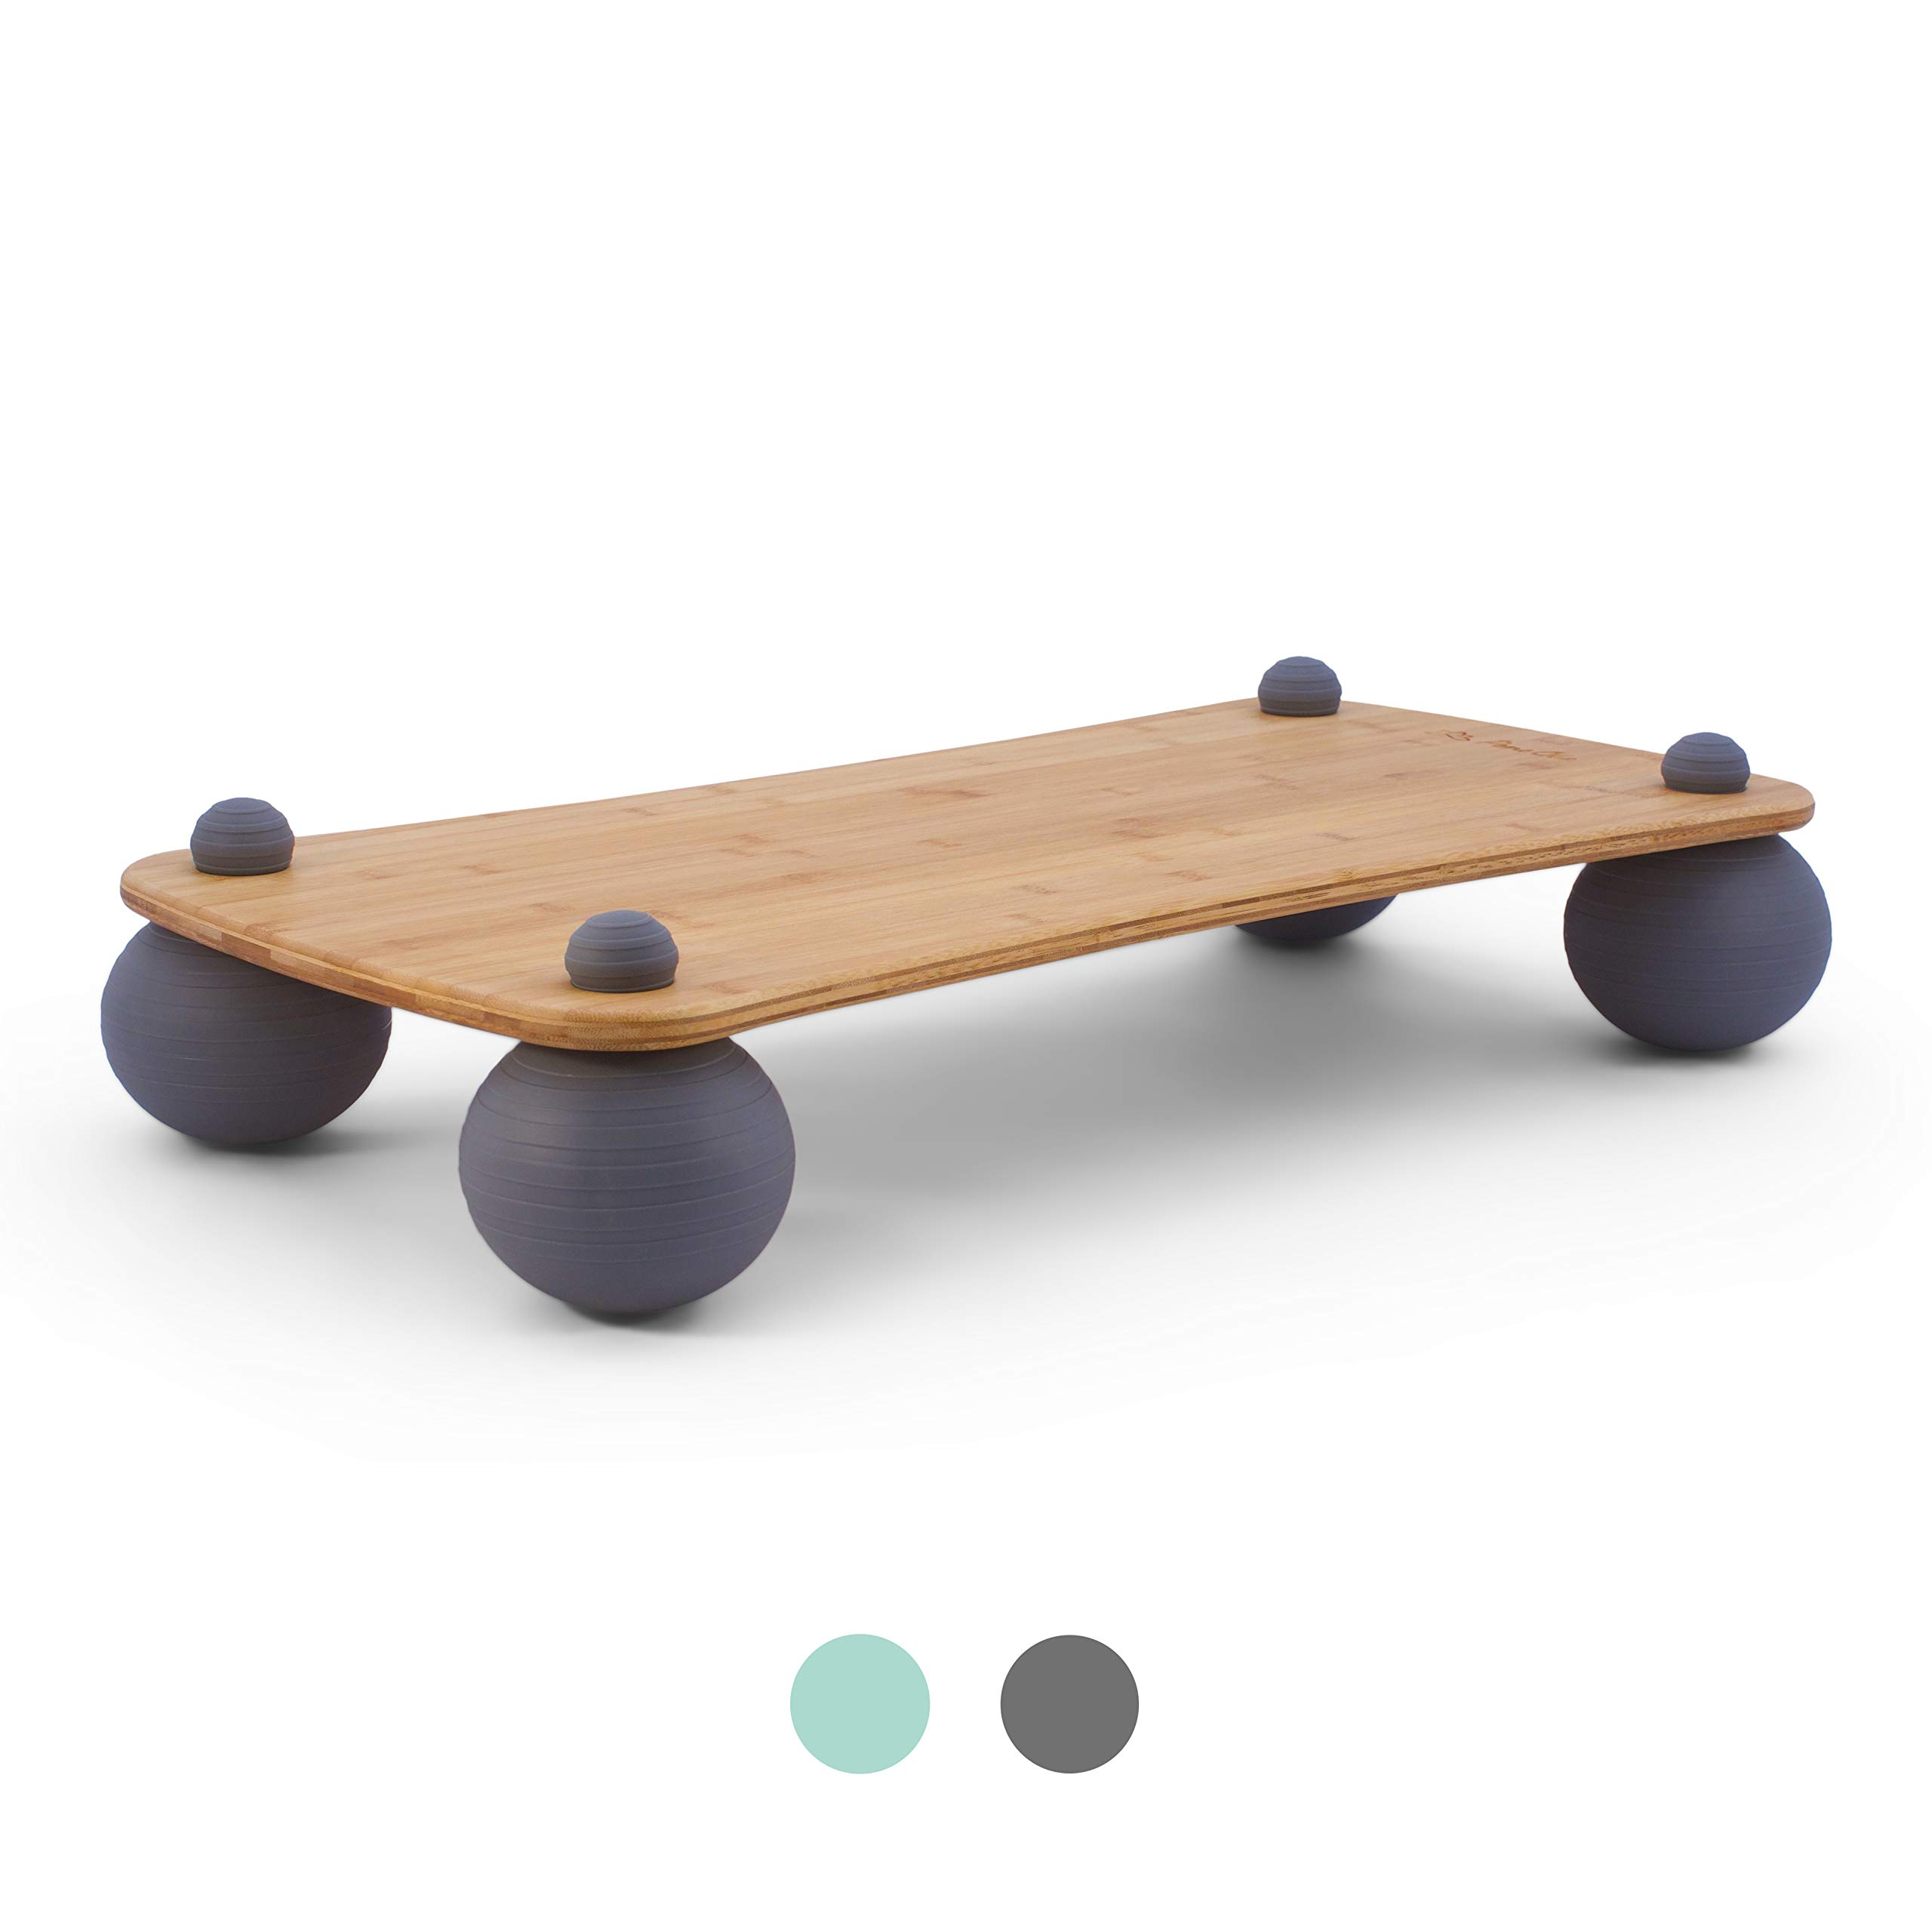 Pono Board - The easy Balance Board for Standing Desks & Fitness